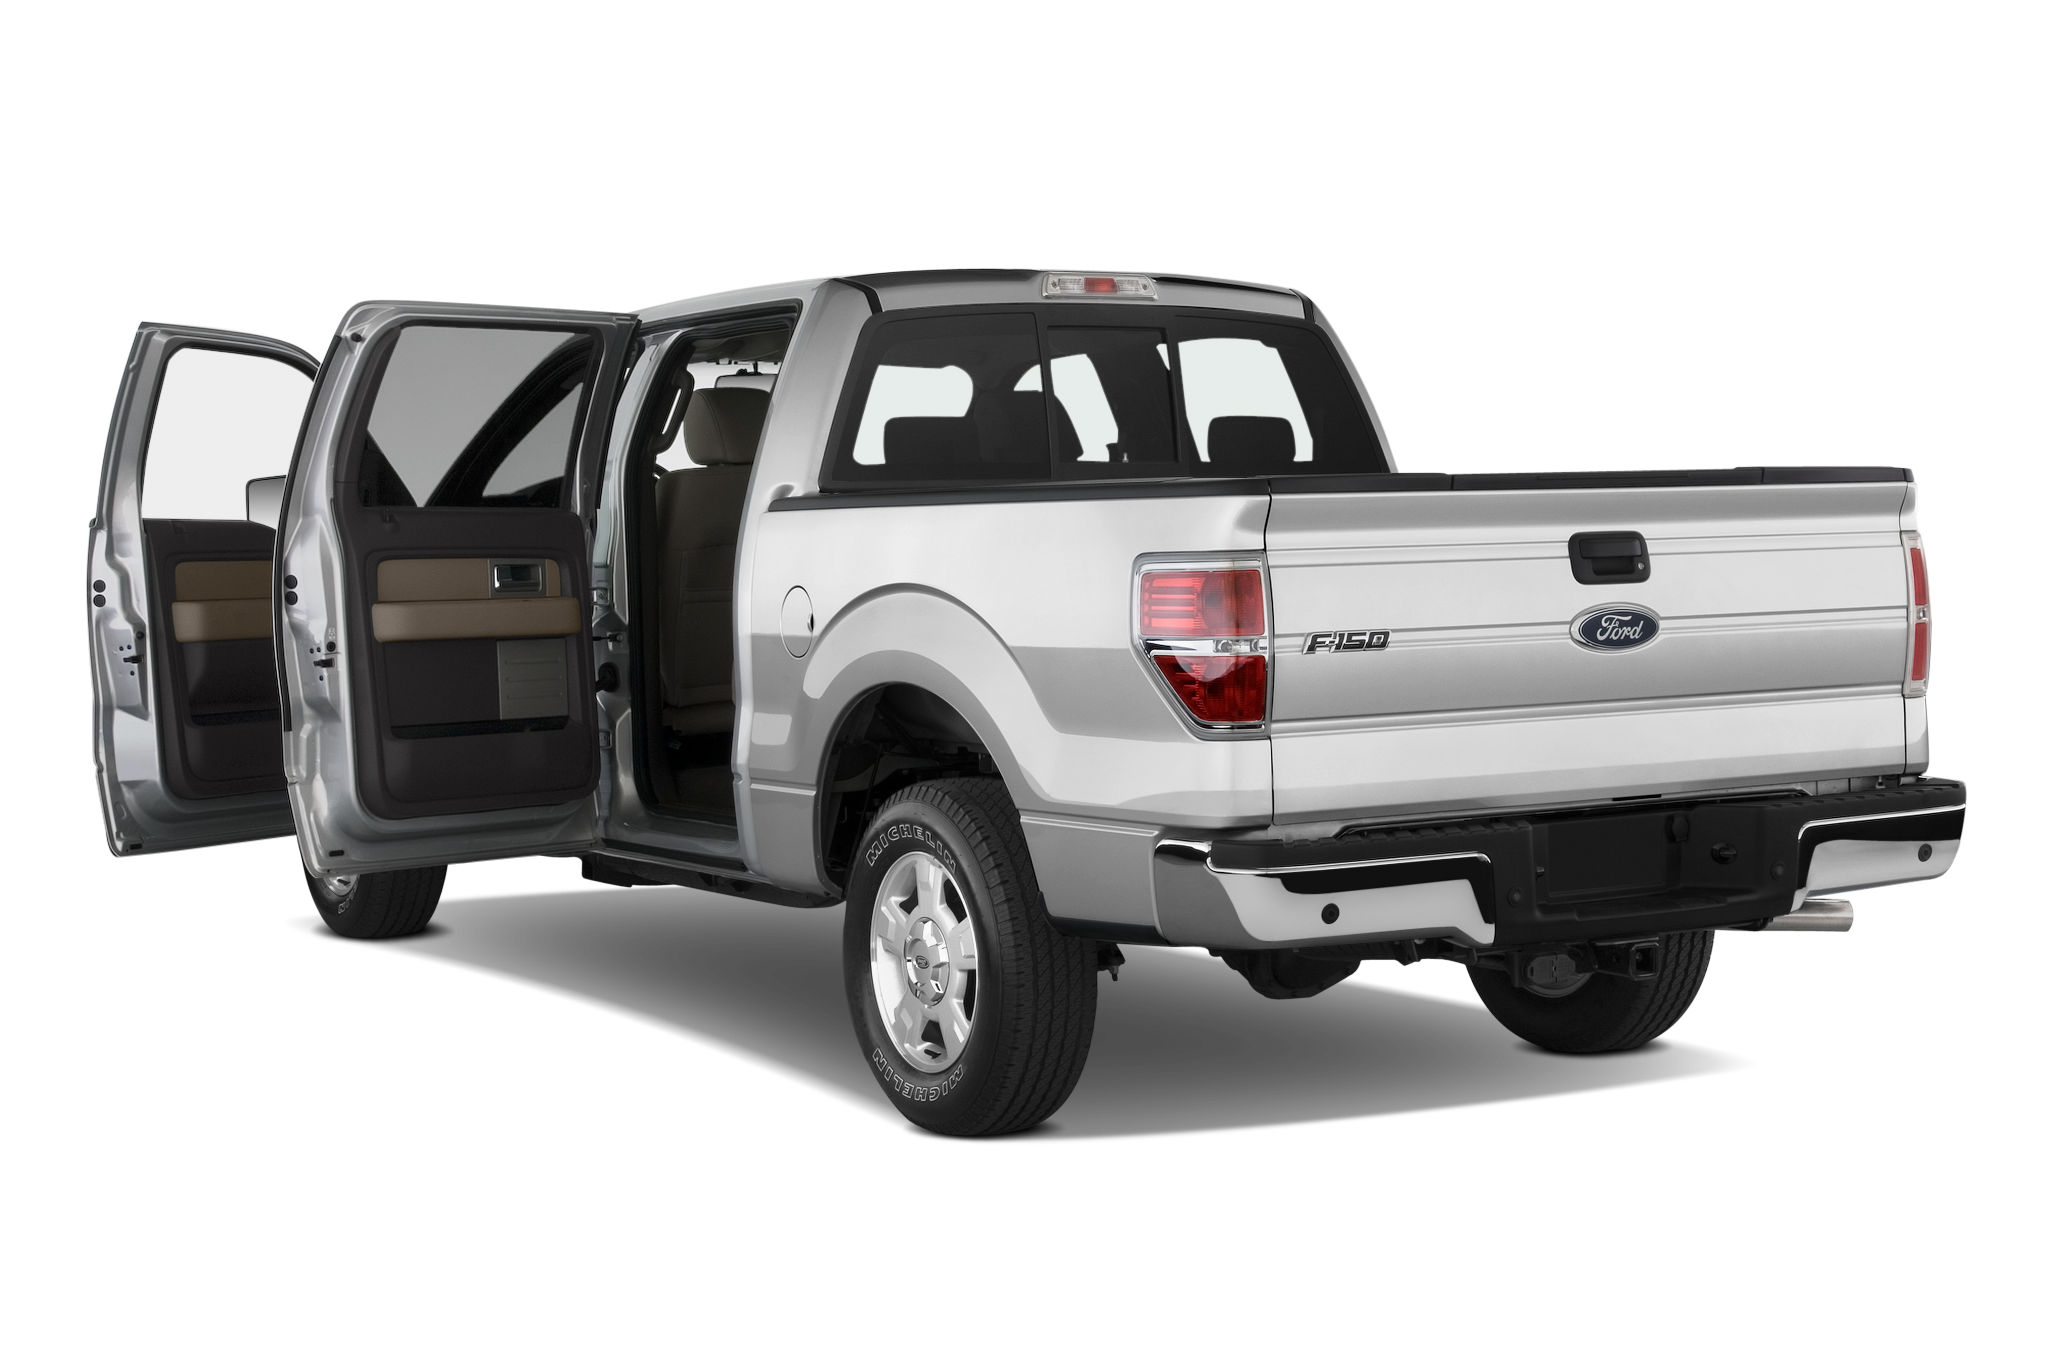 2010 ford f150 svt raptor new ford pickup review. Black Bedroom Furniture Sets. Home Design Ideas